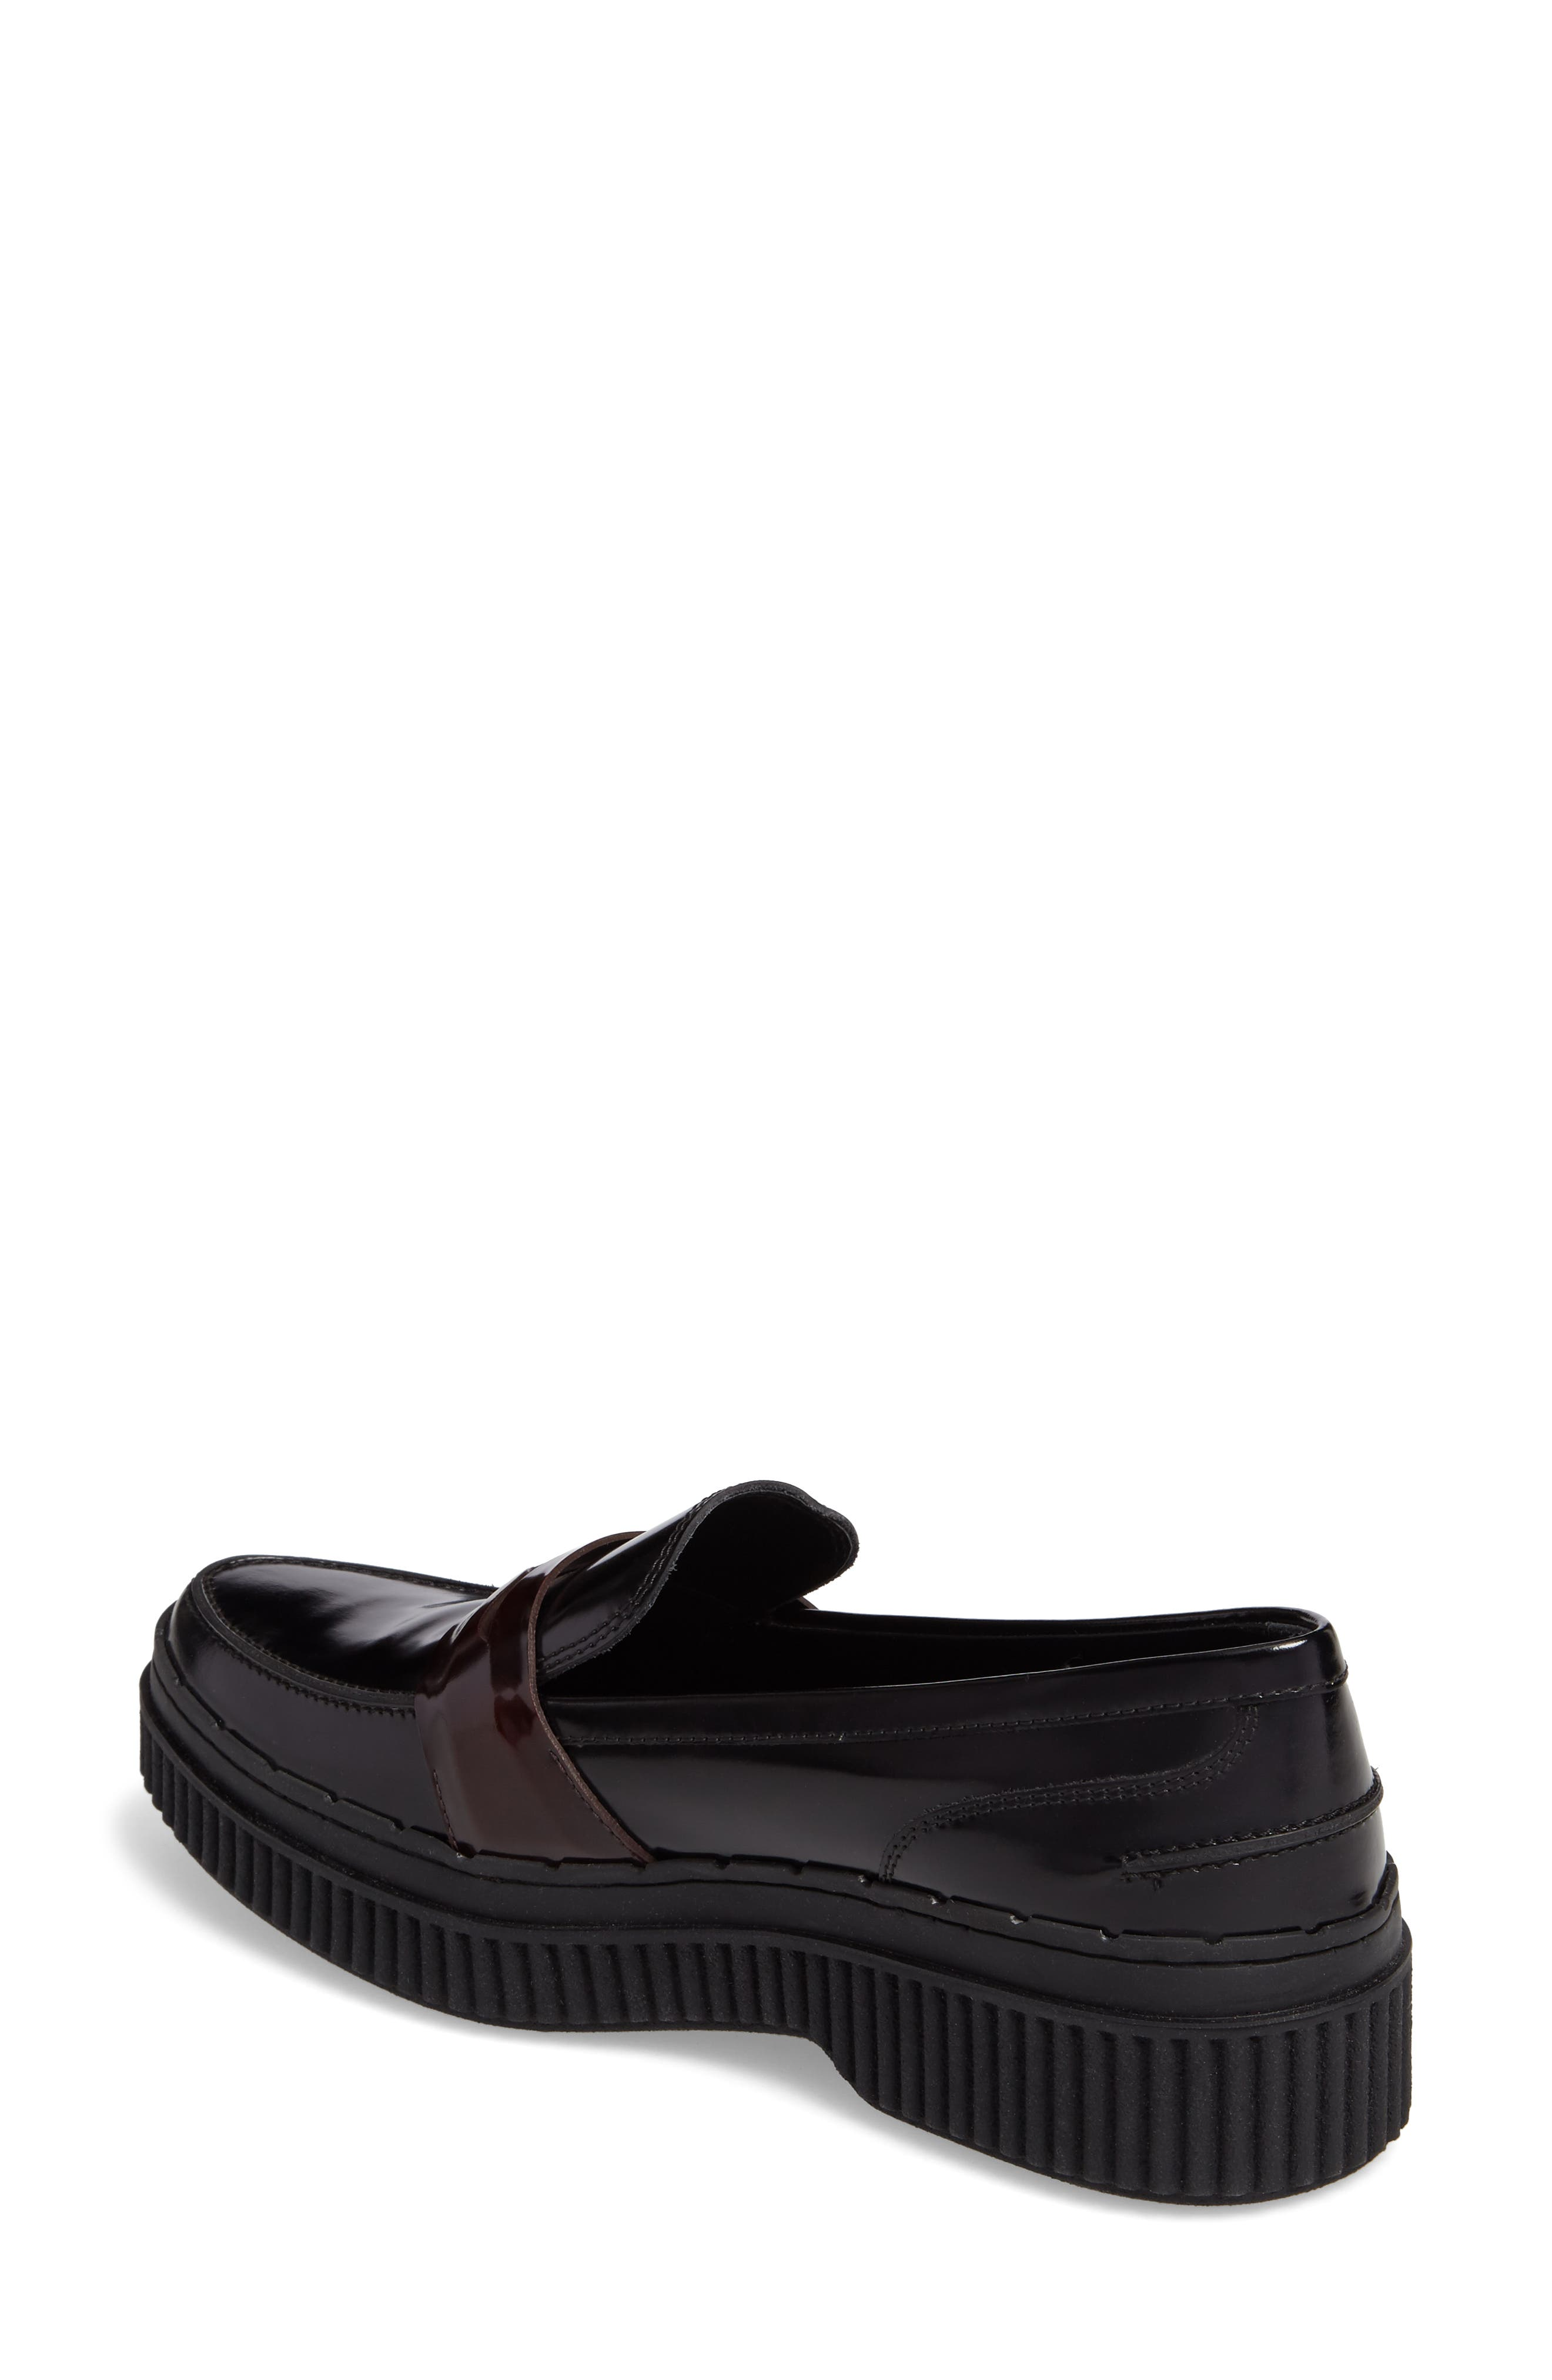 Penny Creeper Loafer,                             Alternate thumbnail 2, color,                             Black/ Oxblood